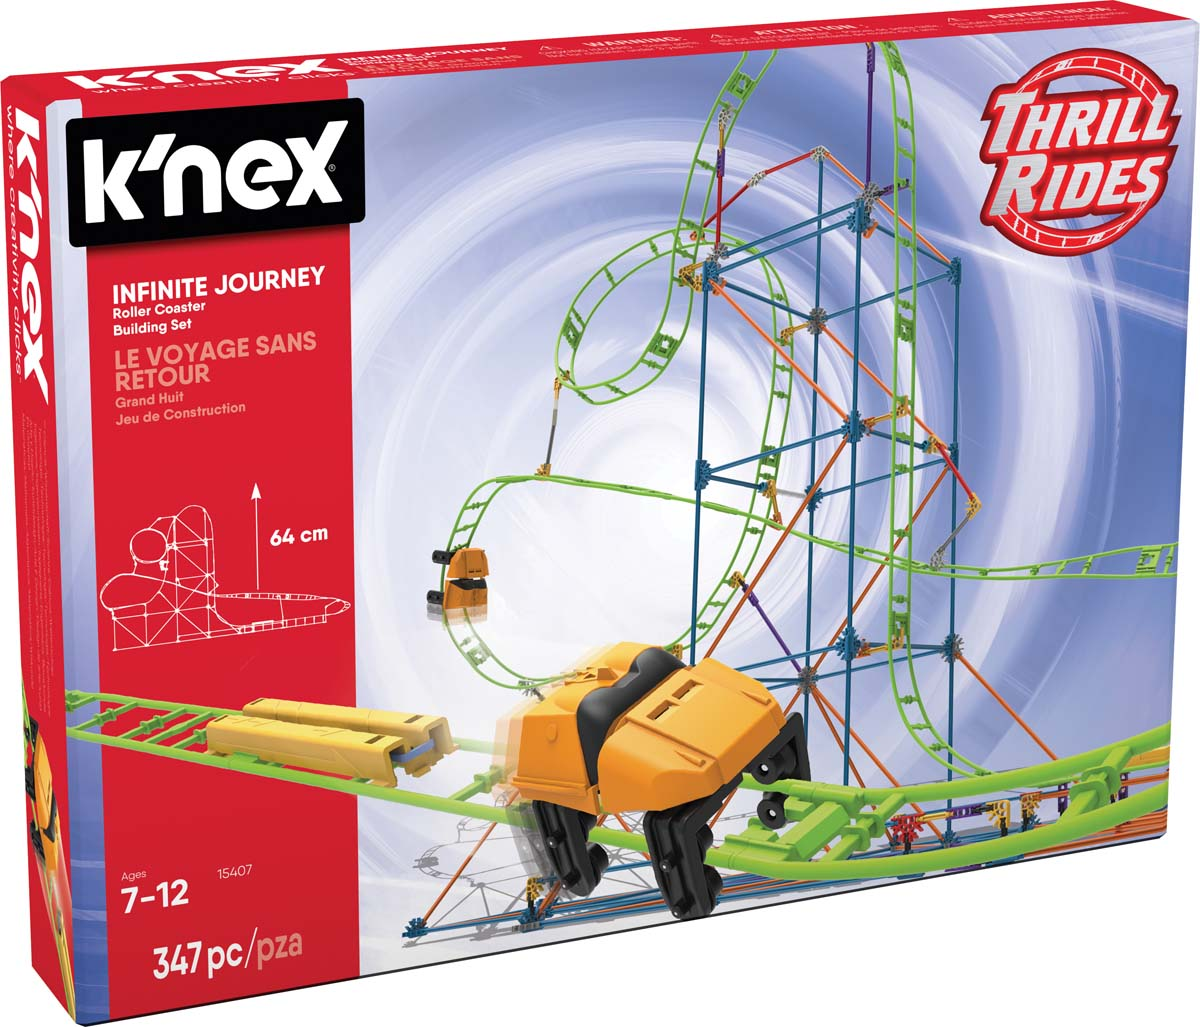 K Nex Thrill Rides Infinite Journey Roller Coaster Building Set Knex Co Uk Where Creativity Clicks